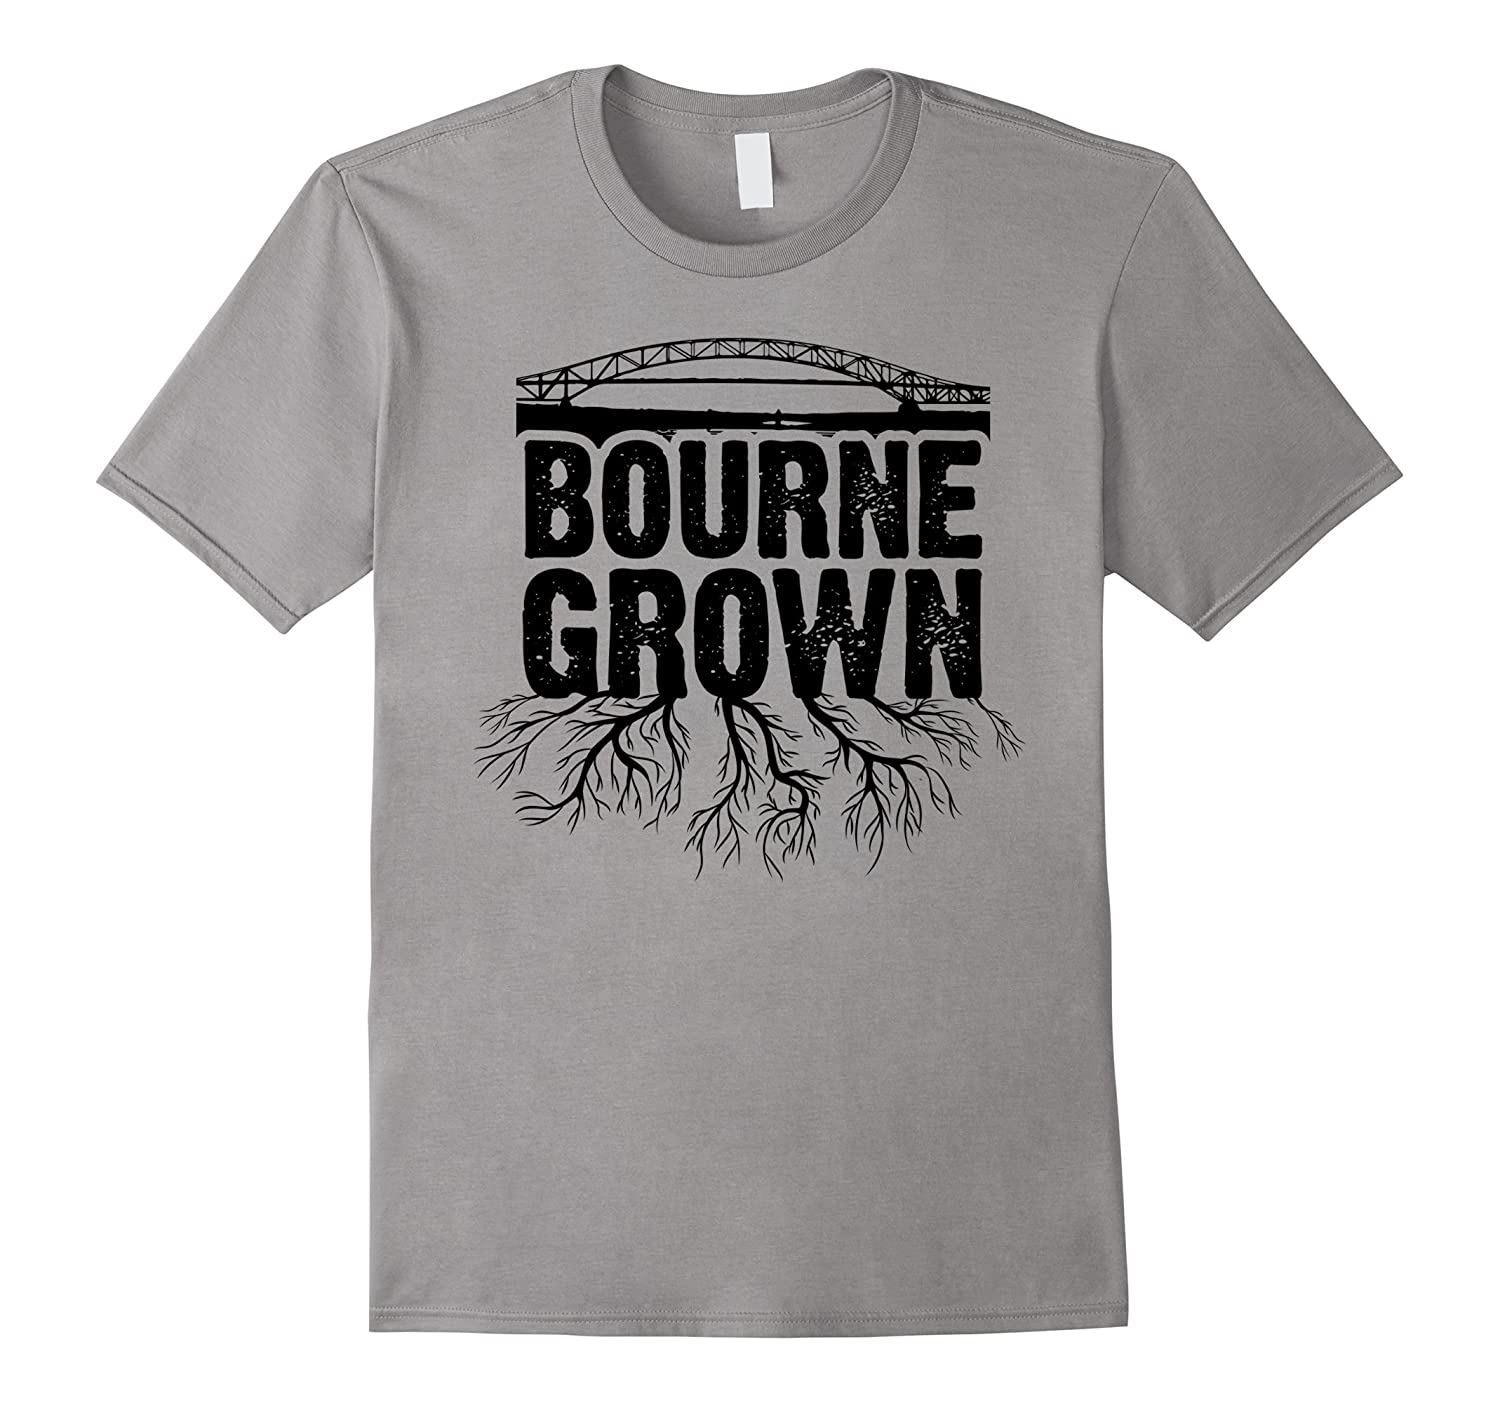 Bourne Grown T Shirt-TD